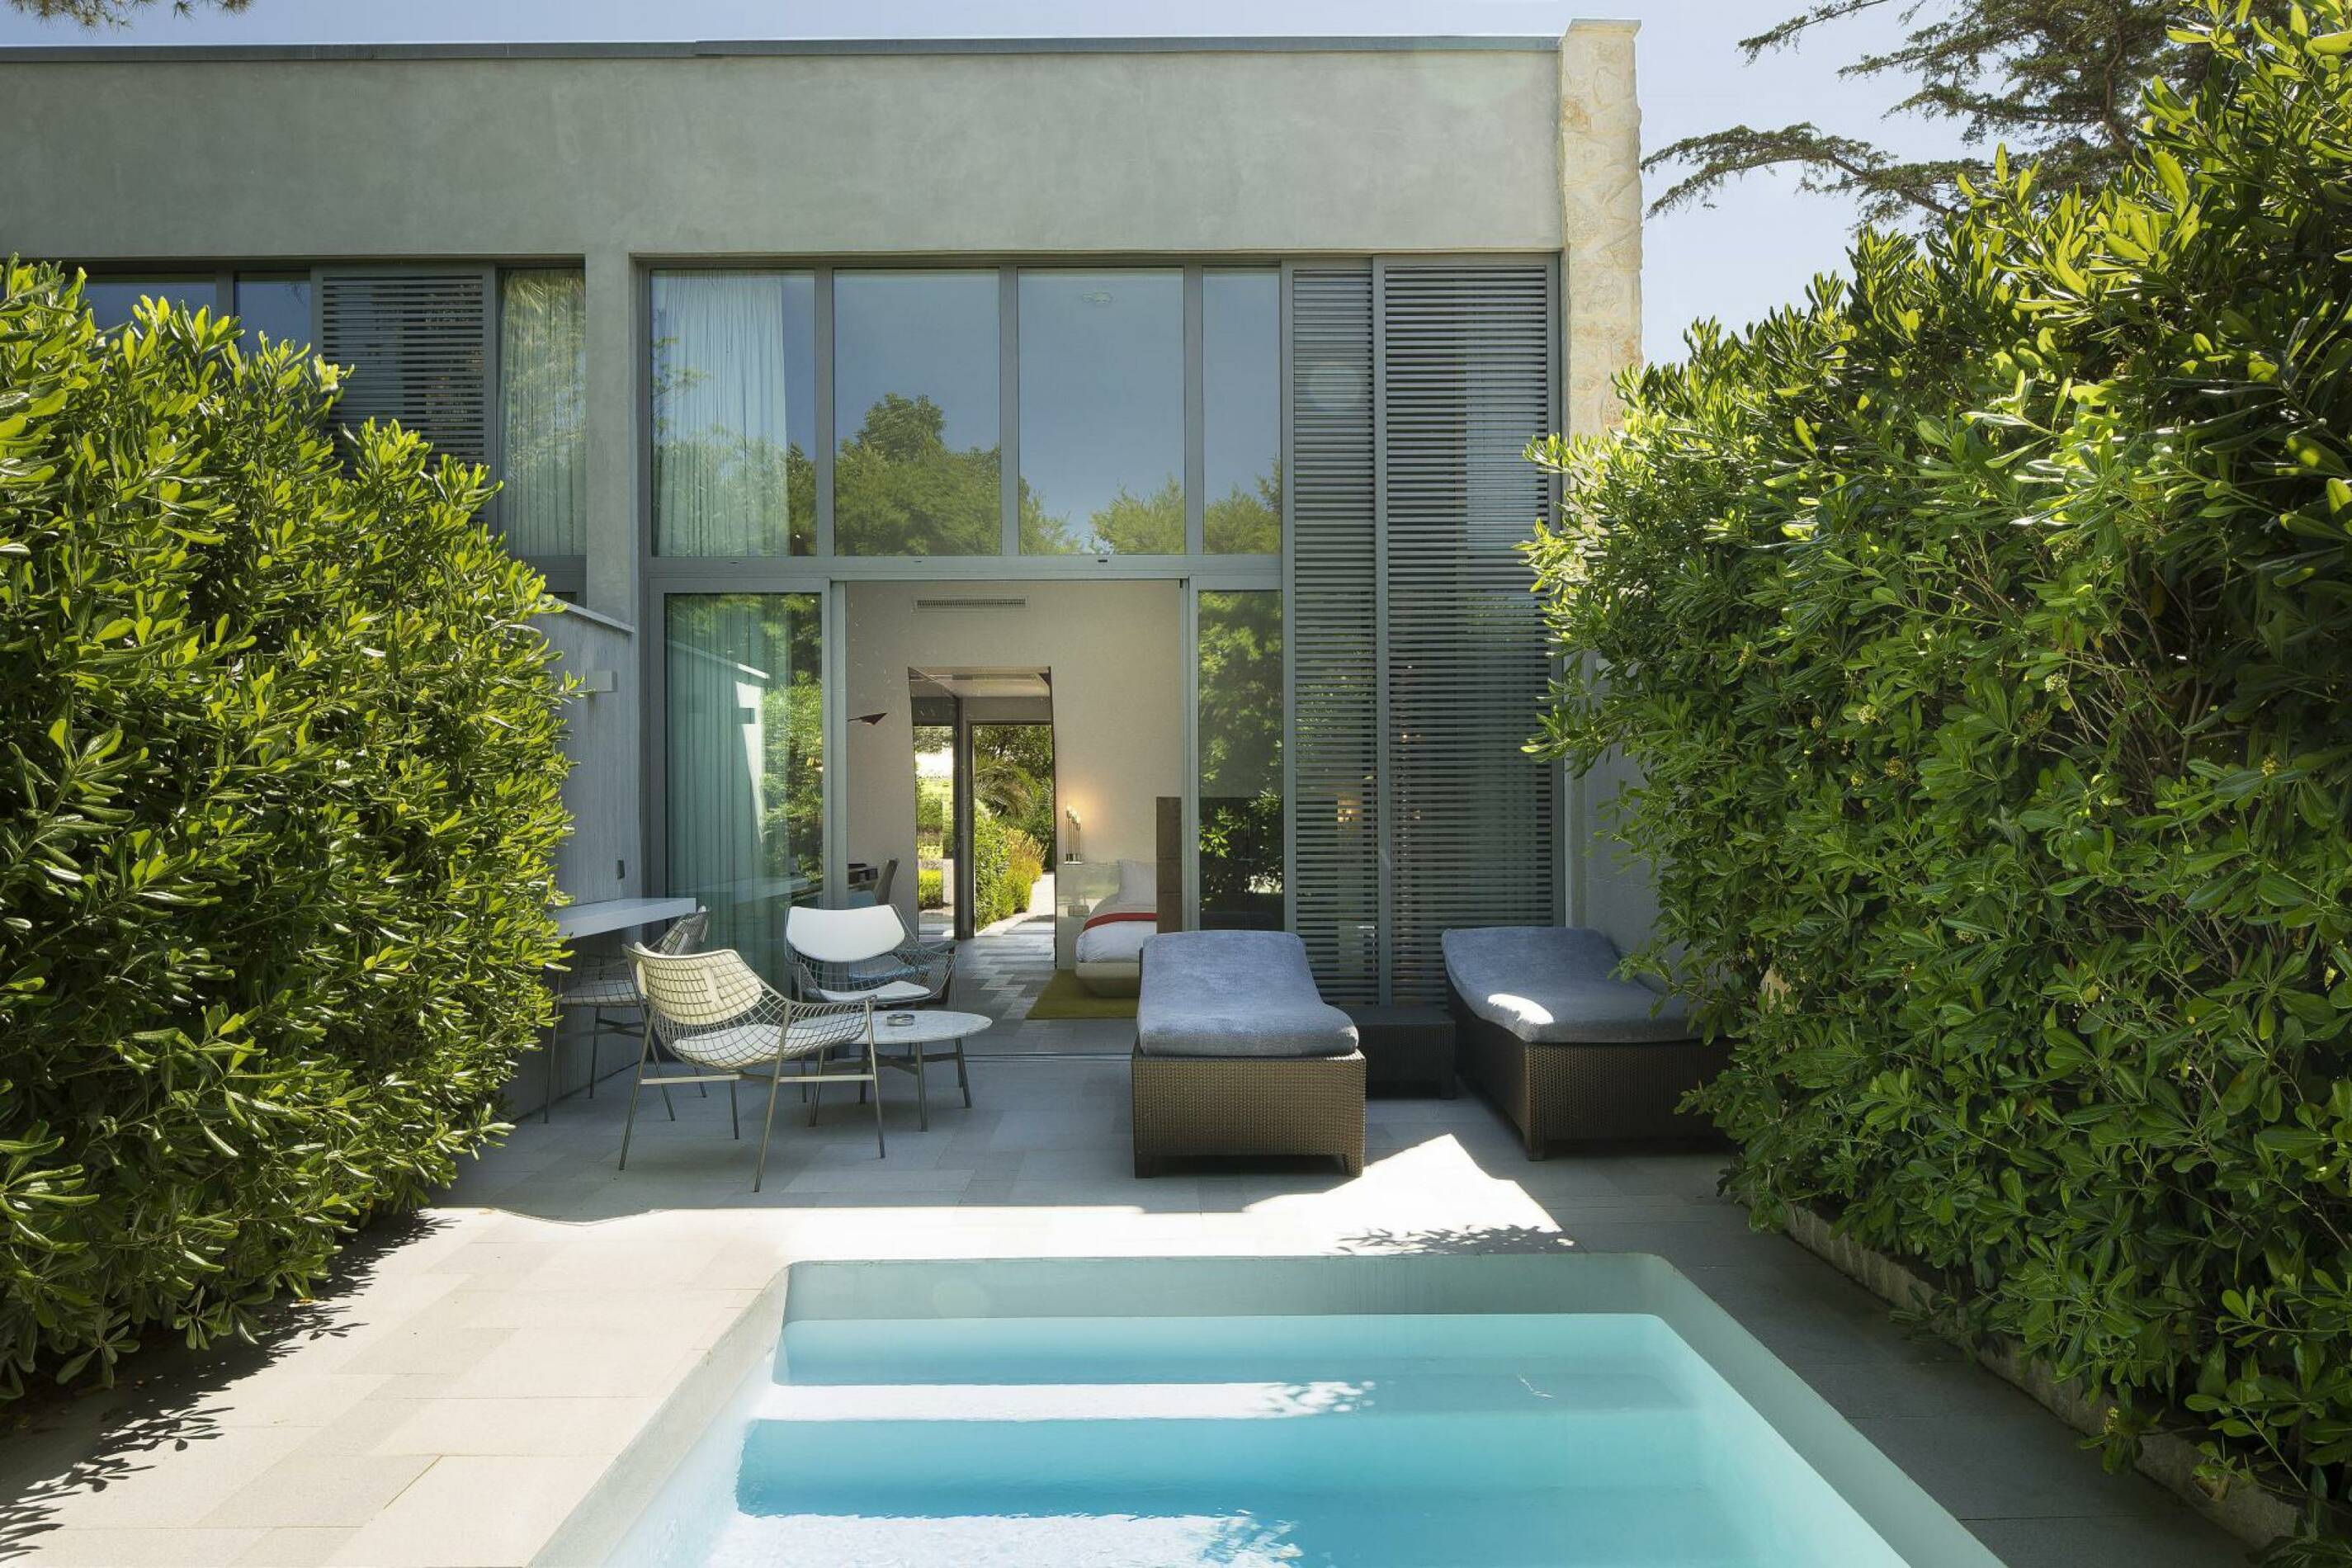 Hotel Sezz Cocoon With Pool Piscine Saint Tropez